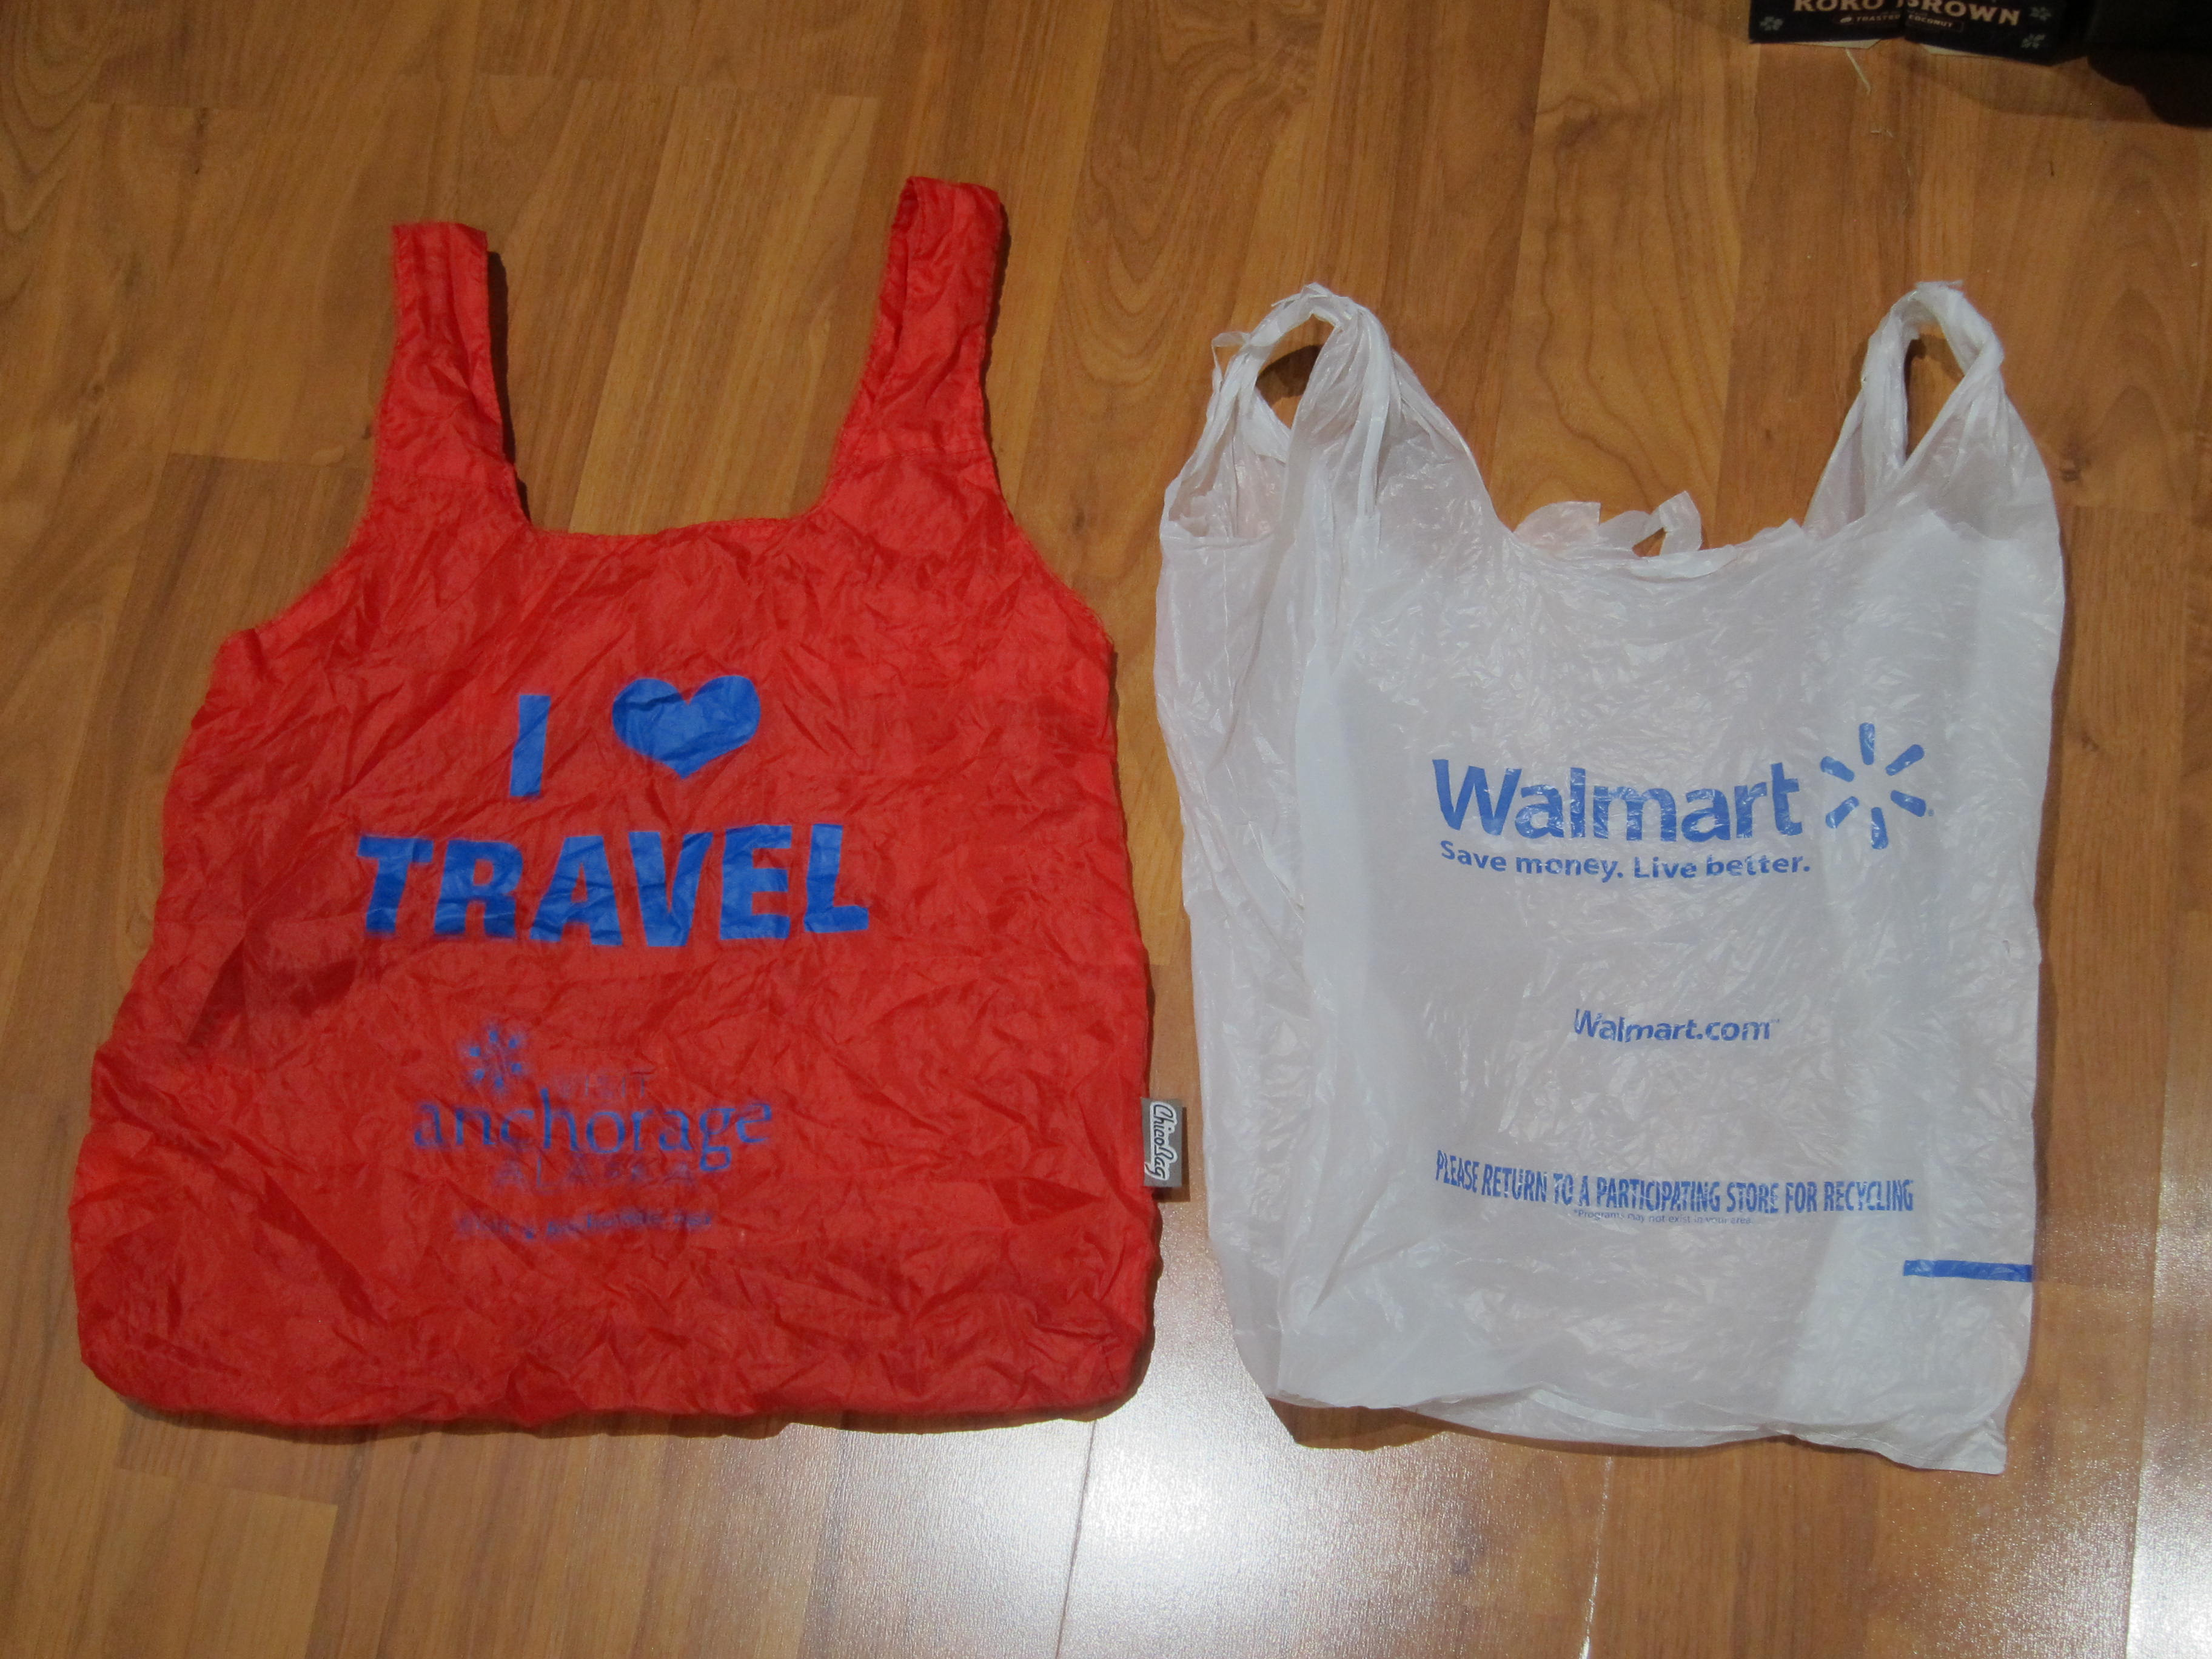 reusable bag next to a Walmart bag